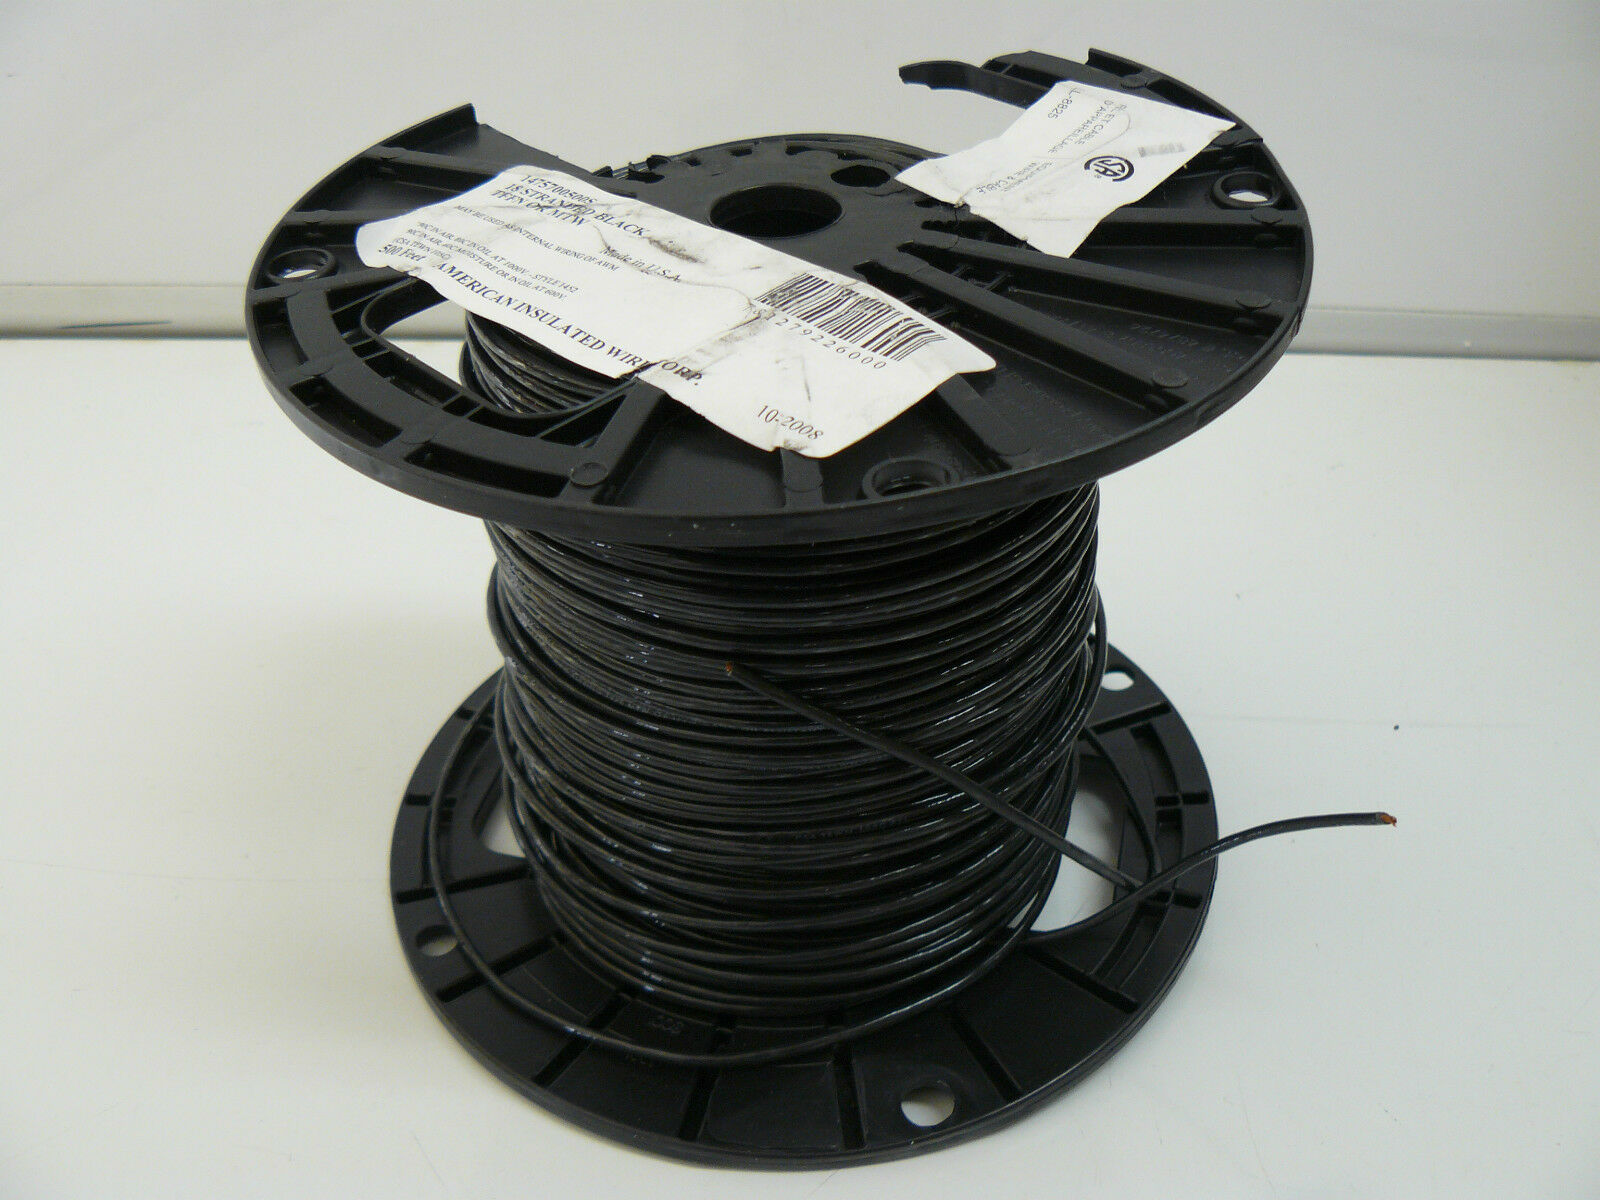 American Insulated Equip Wire 1475700500s 18 Stranded Black TFFN or ...